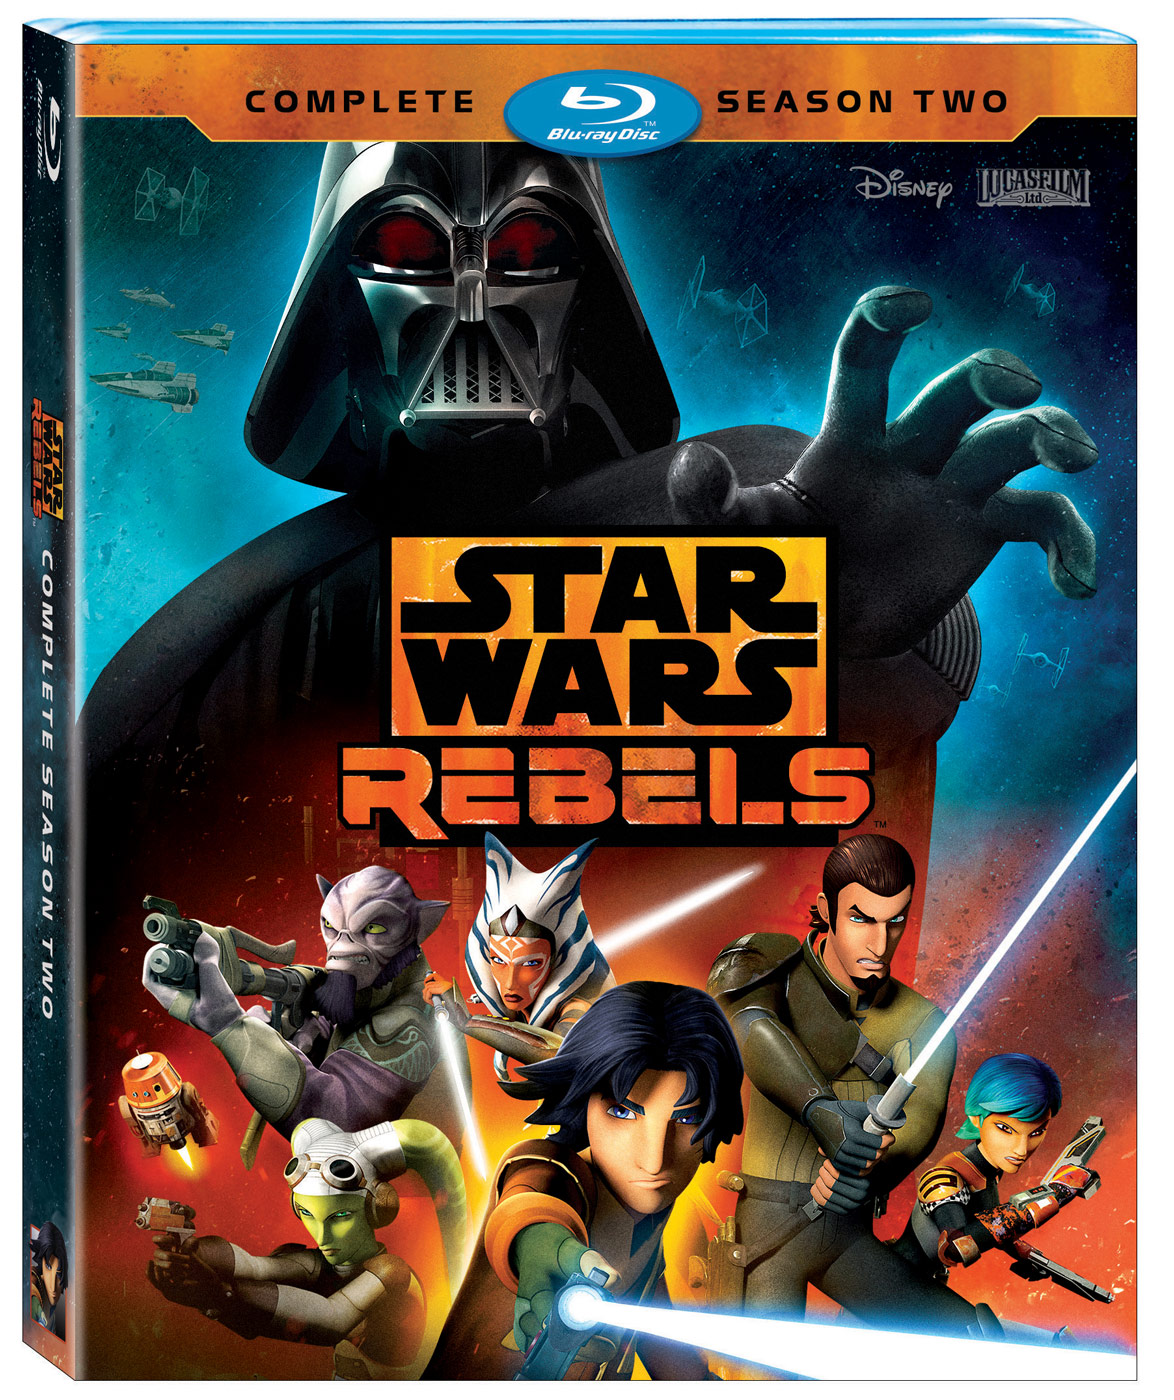 Star Wars Rebels: Complete Season Two Coming to Blu-ray ... - photo#36